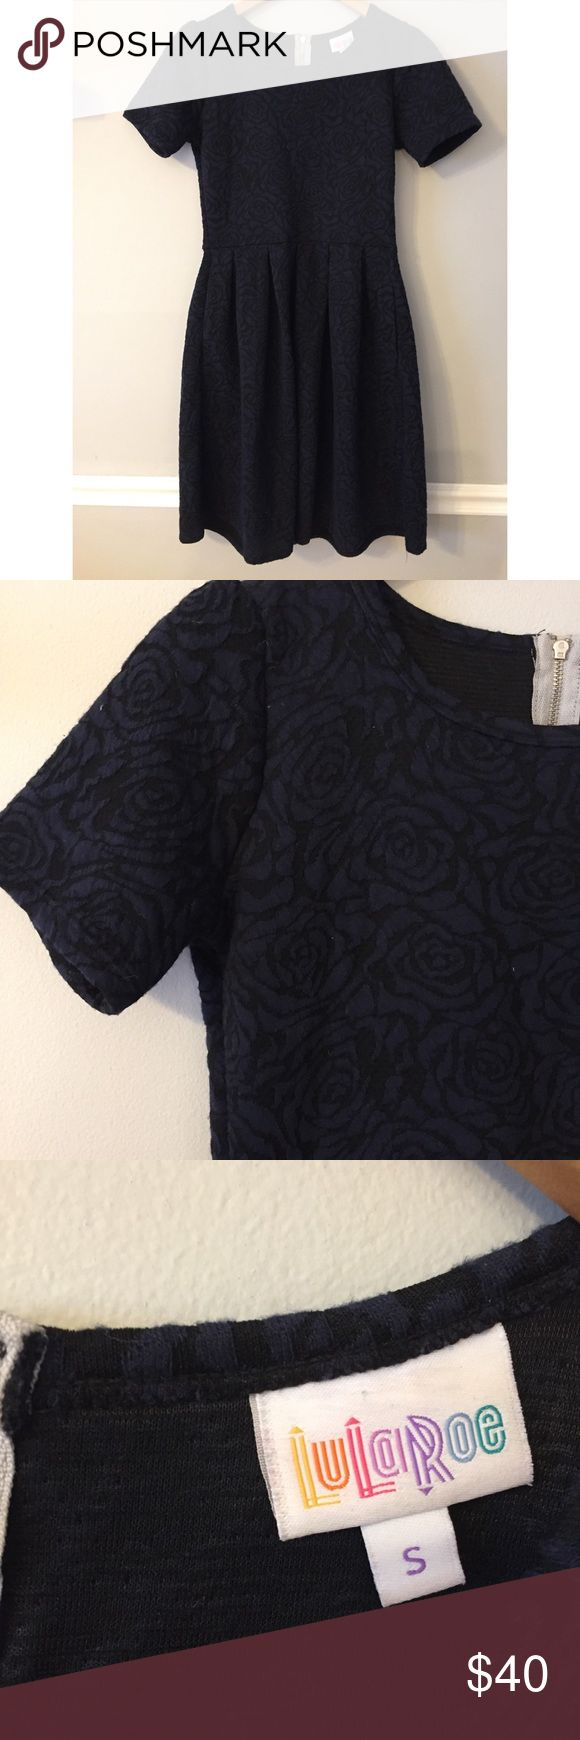 """LuLaRoe • Raised Floral Print Amelia Dress LuLaRoe • Raised Floral Print Amelia Dress  The Amelia Dress stretchy knit fabric is comfortable enough to let you wear the dress all day, while having the structure and tailoring that make it sophisticated enough for the office or a fancy night out.   Excellent preowned condition.  Underarm Span: 17"""" Length: 41"""" to longest hemline. LuLaRoe Dresses"""